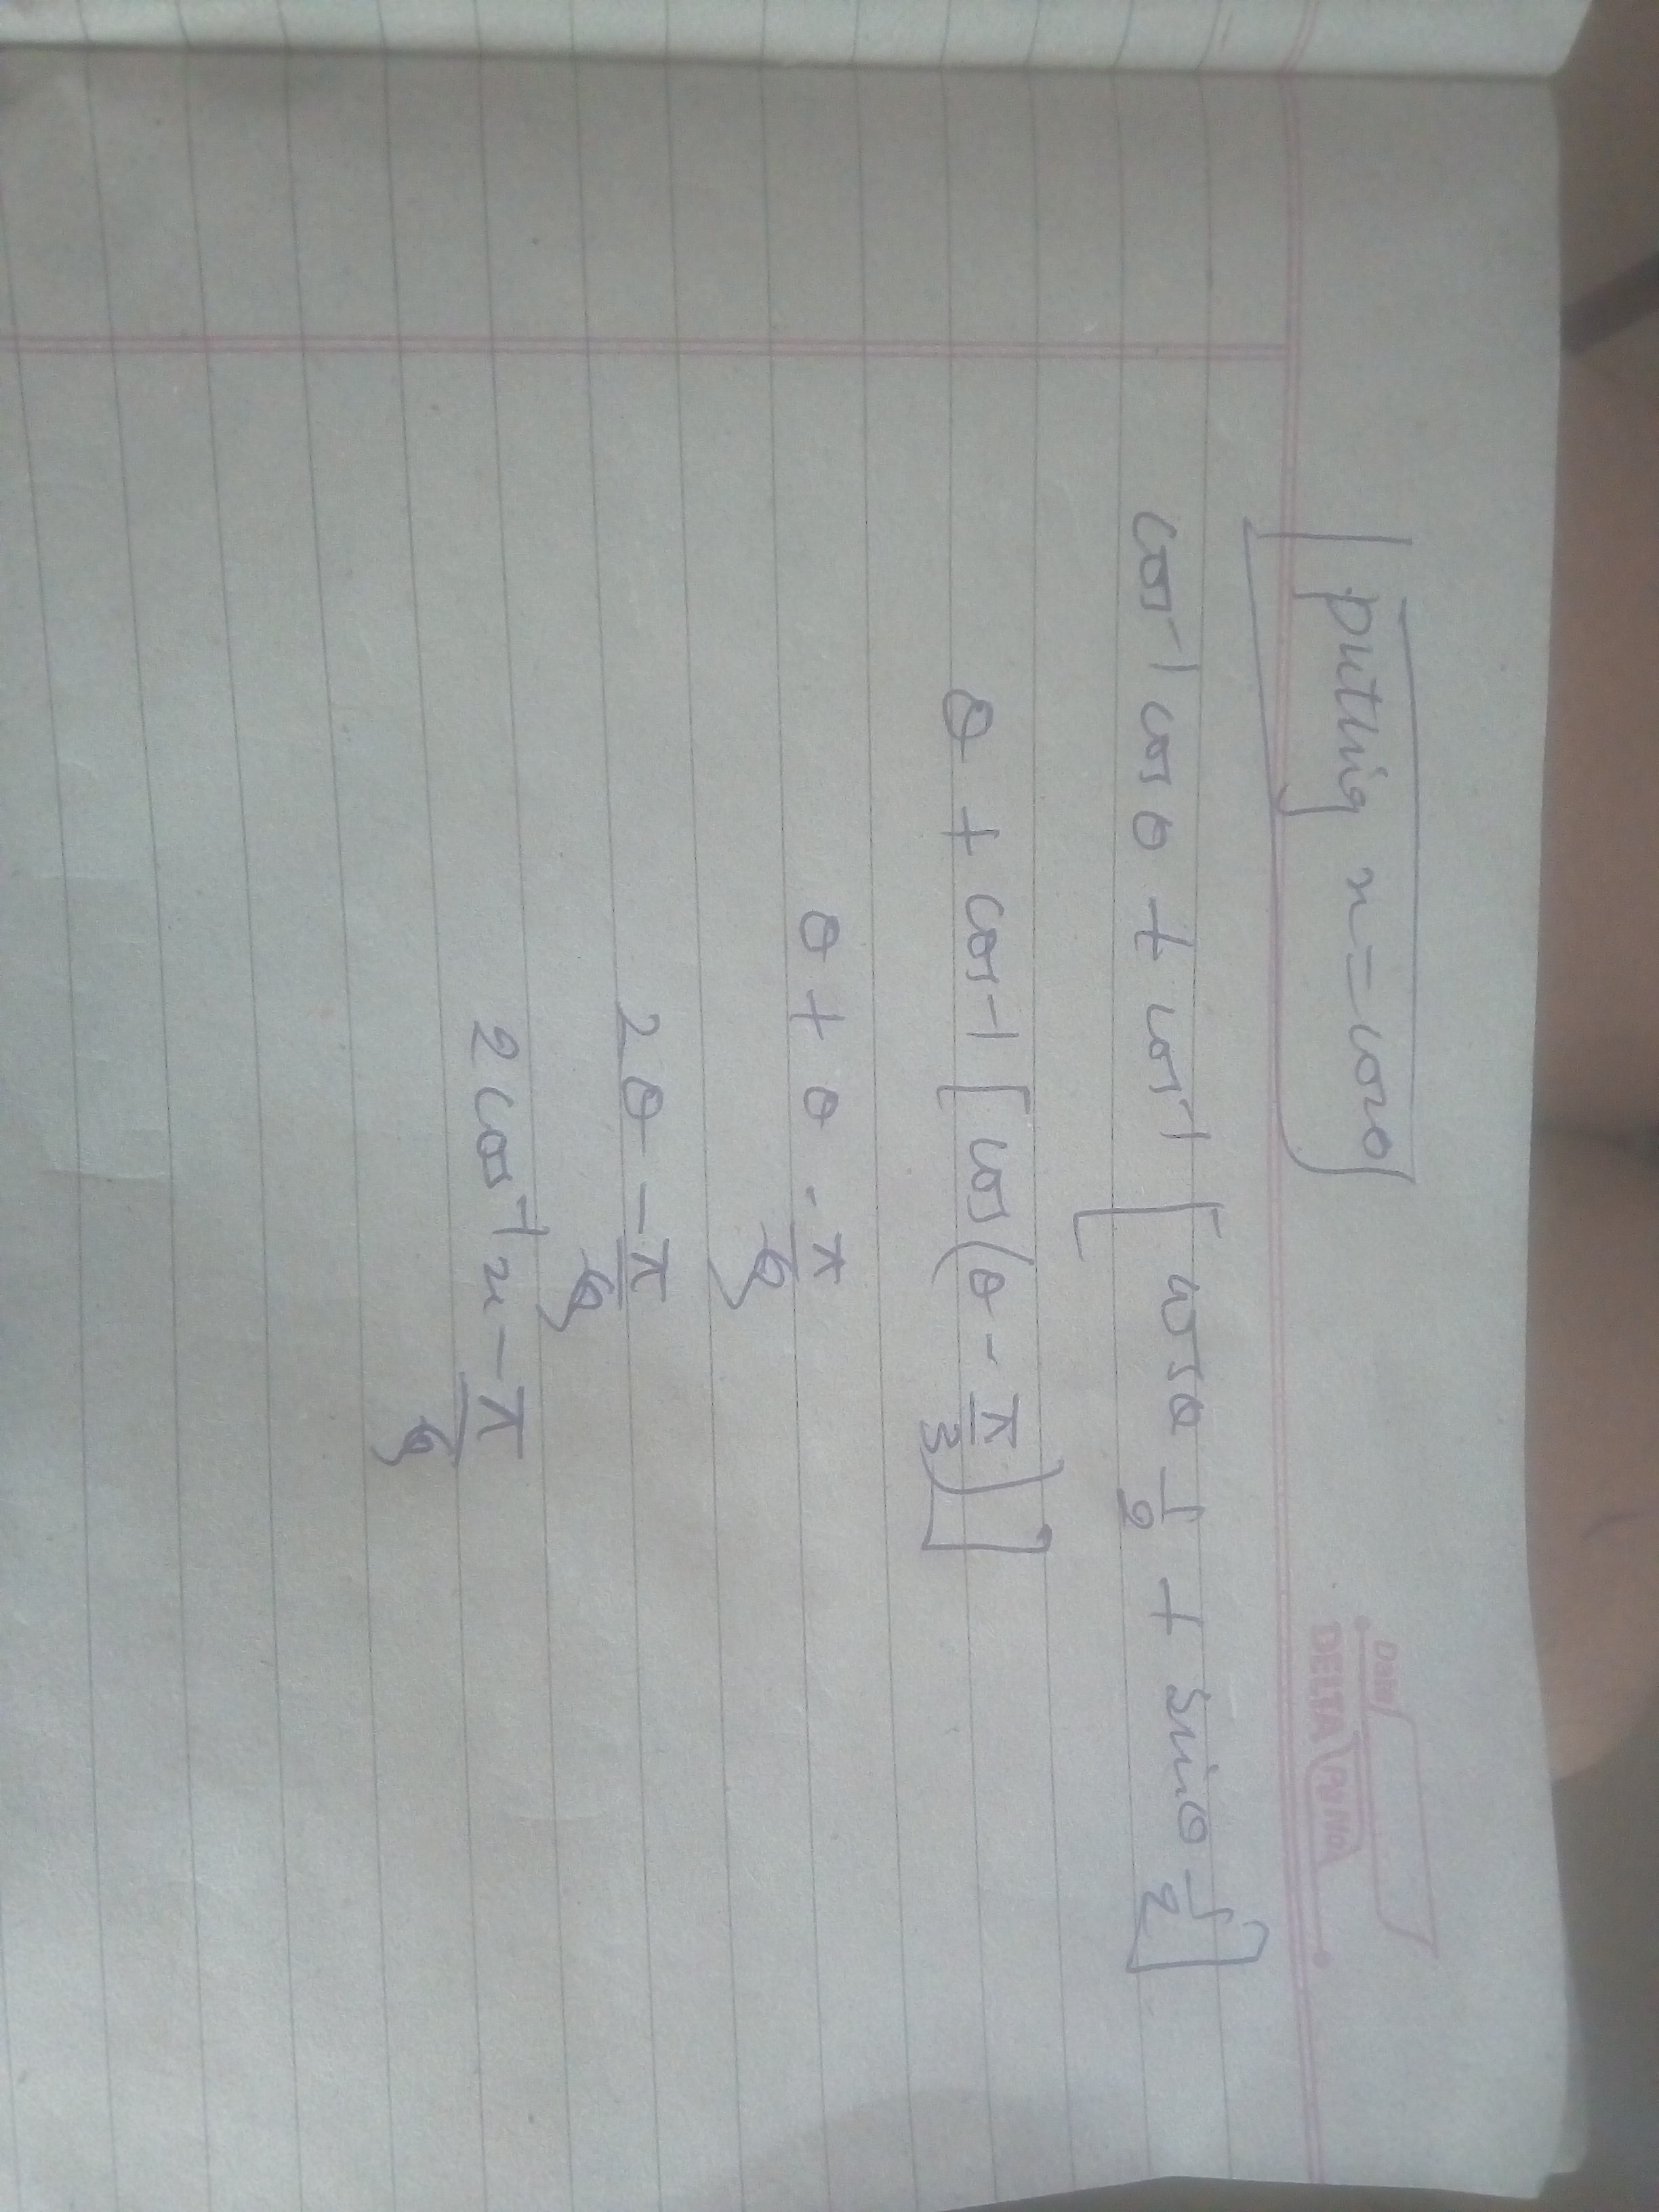 SOLVED:Rewrite the product as a sum. 2 \\sin (5 x) \\cos (3 x)